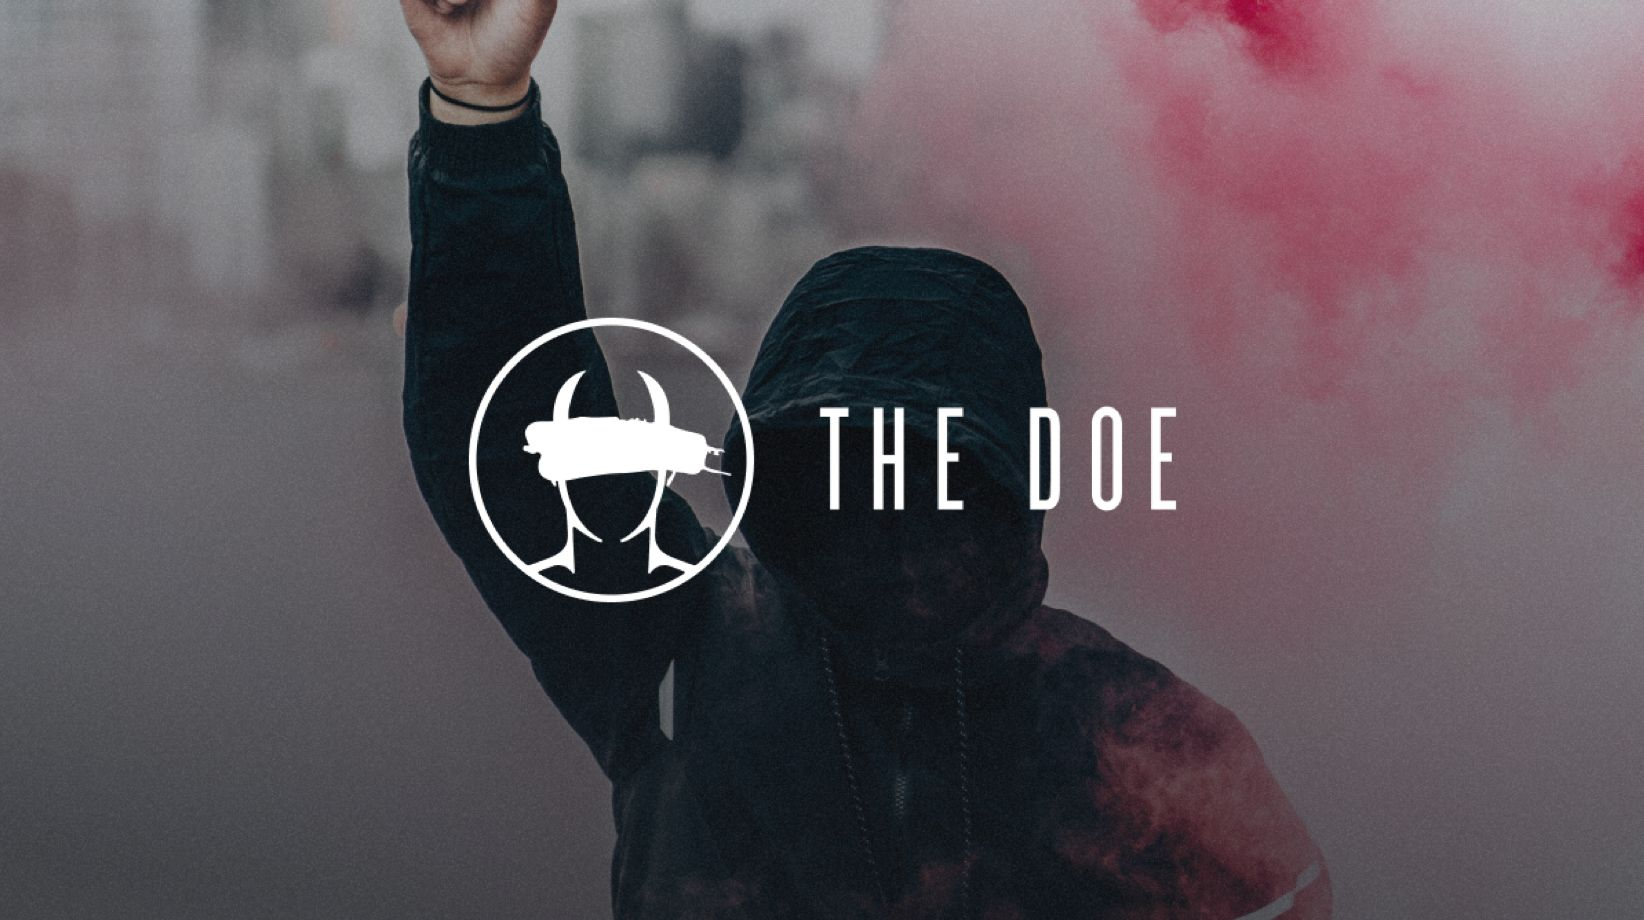 The DOE Hacker Noon profile picture